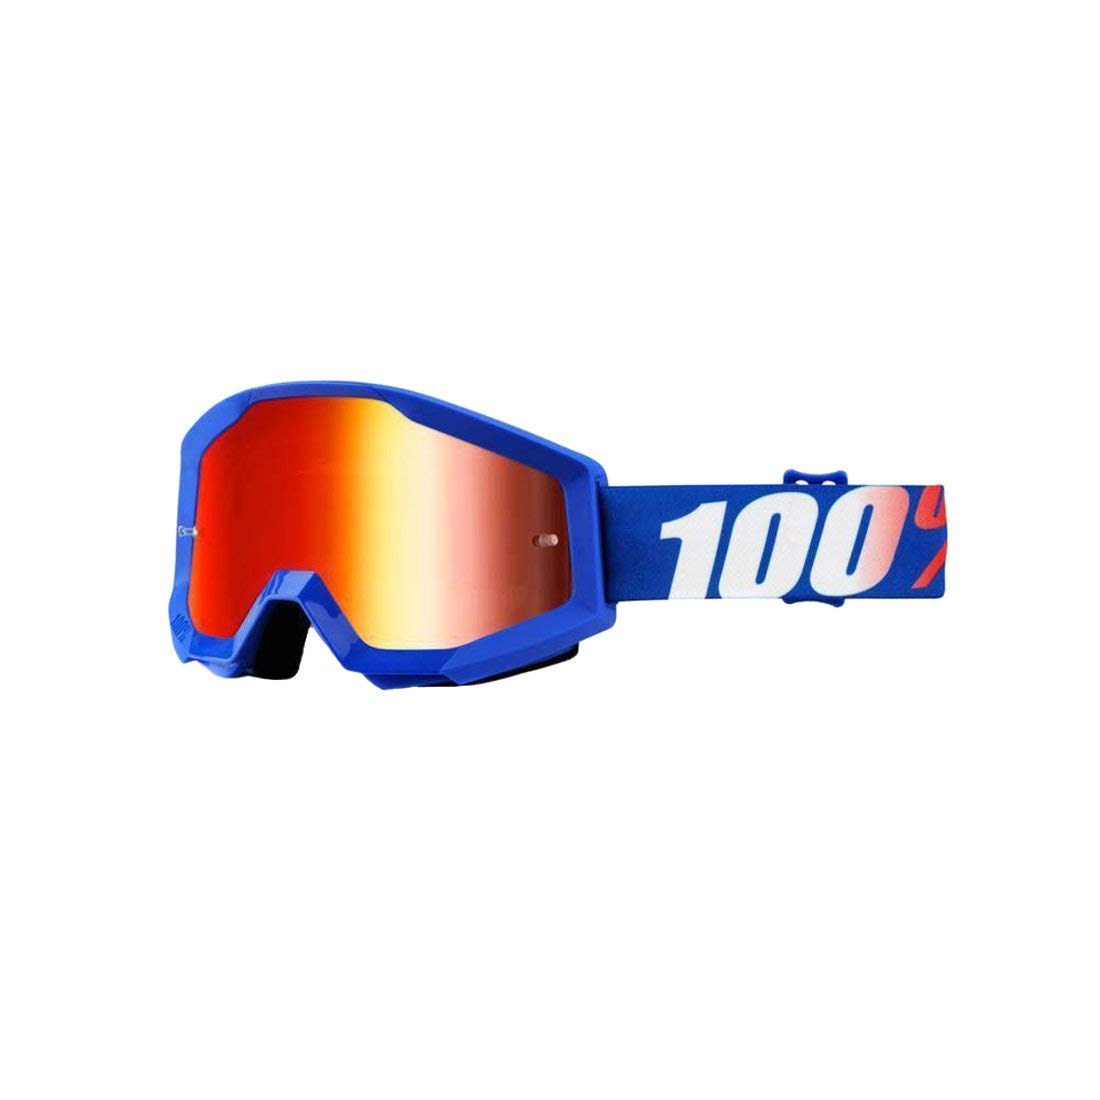 100% unisex-adult Speedlab (50510-236-02) STRATA JR Goggle Nation-Mirror Red Lens, One Size by 100%